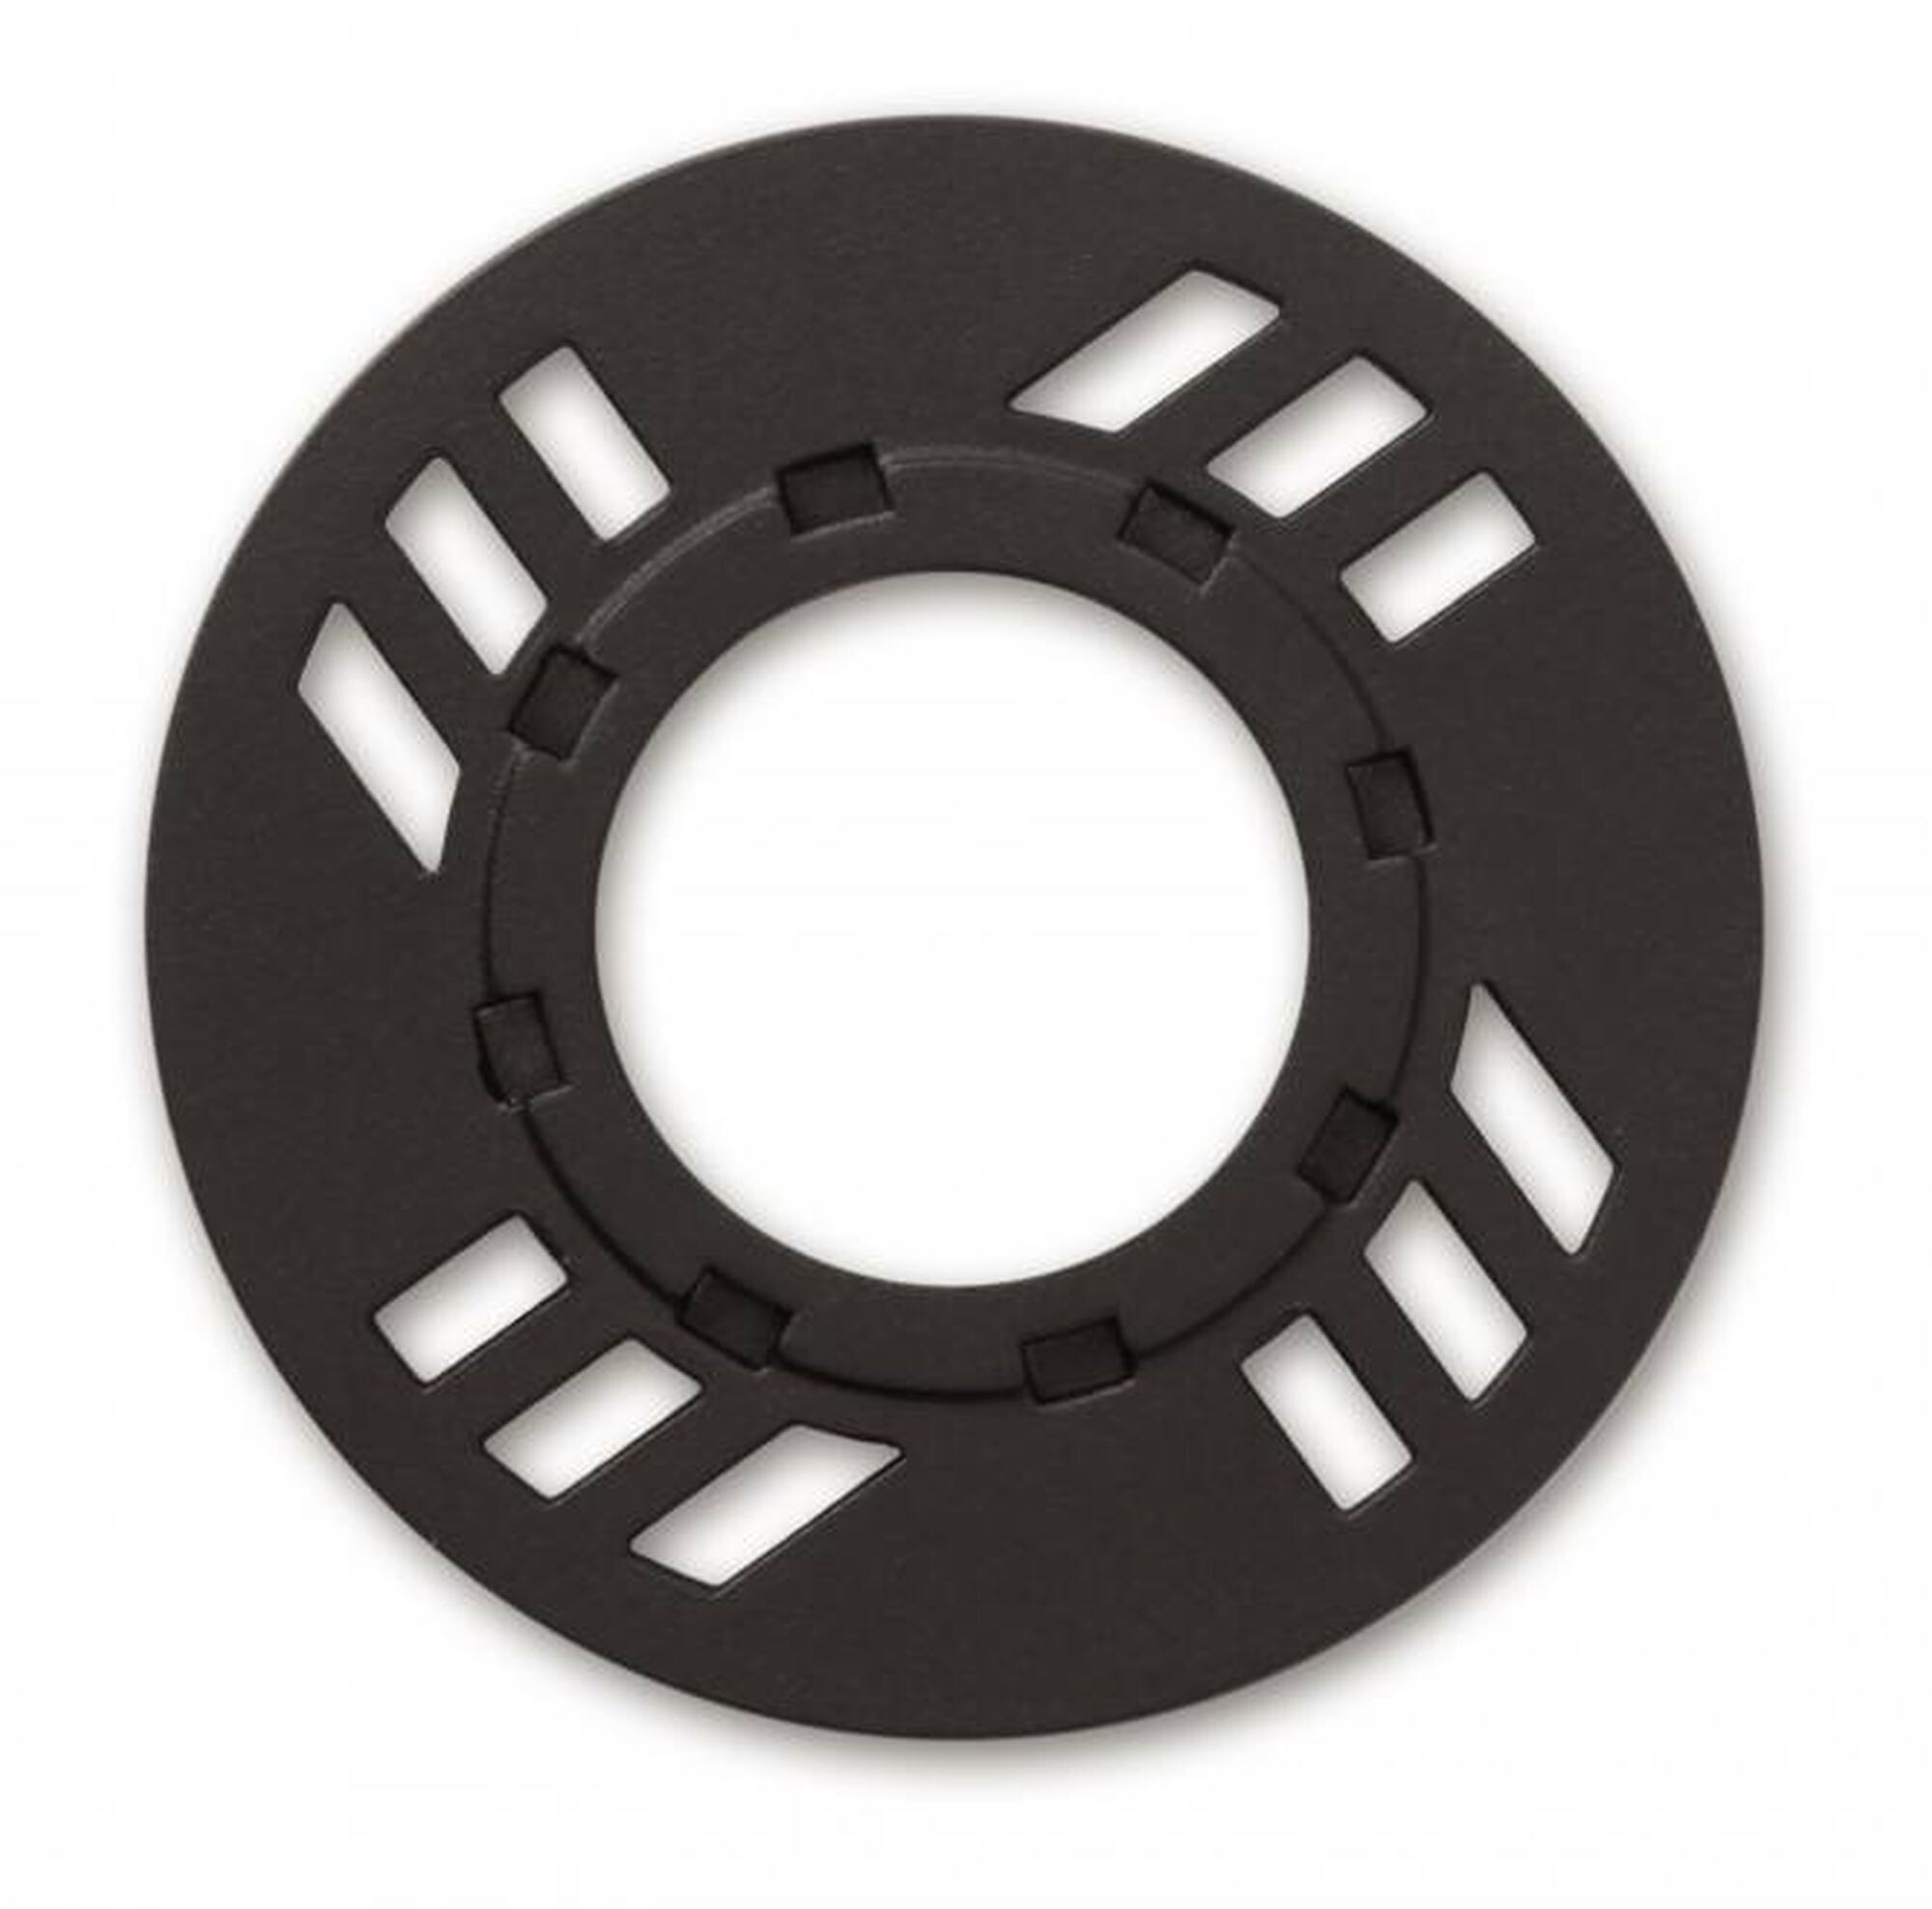 Miranda Kædebeskyttelse with O-Ring for Bosch Drive, black (2019) | Chain Guard